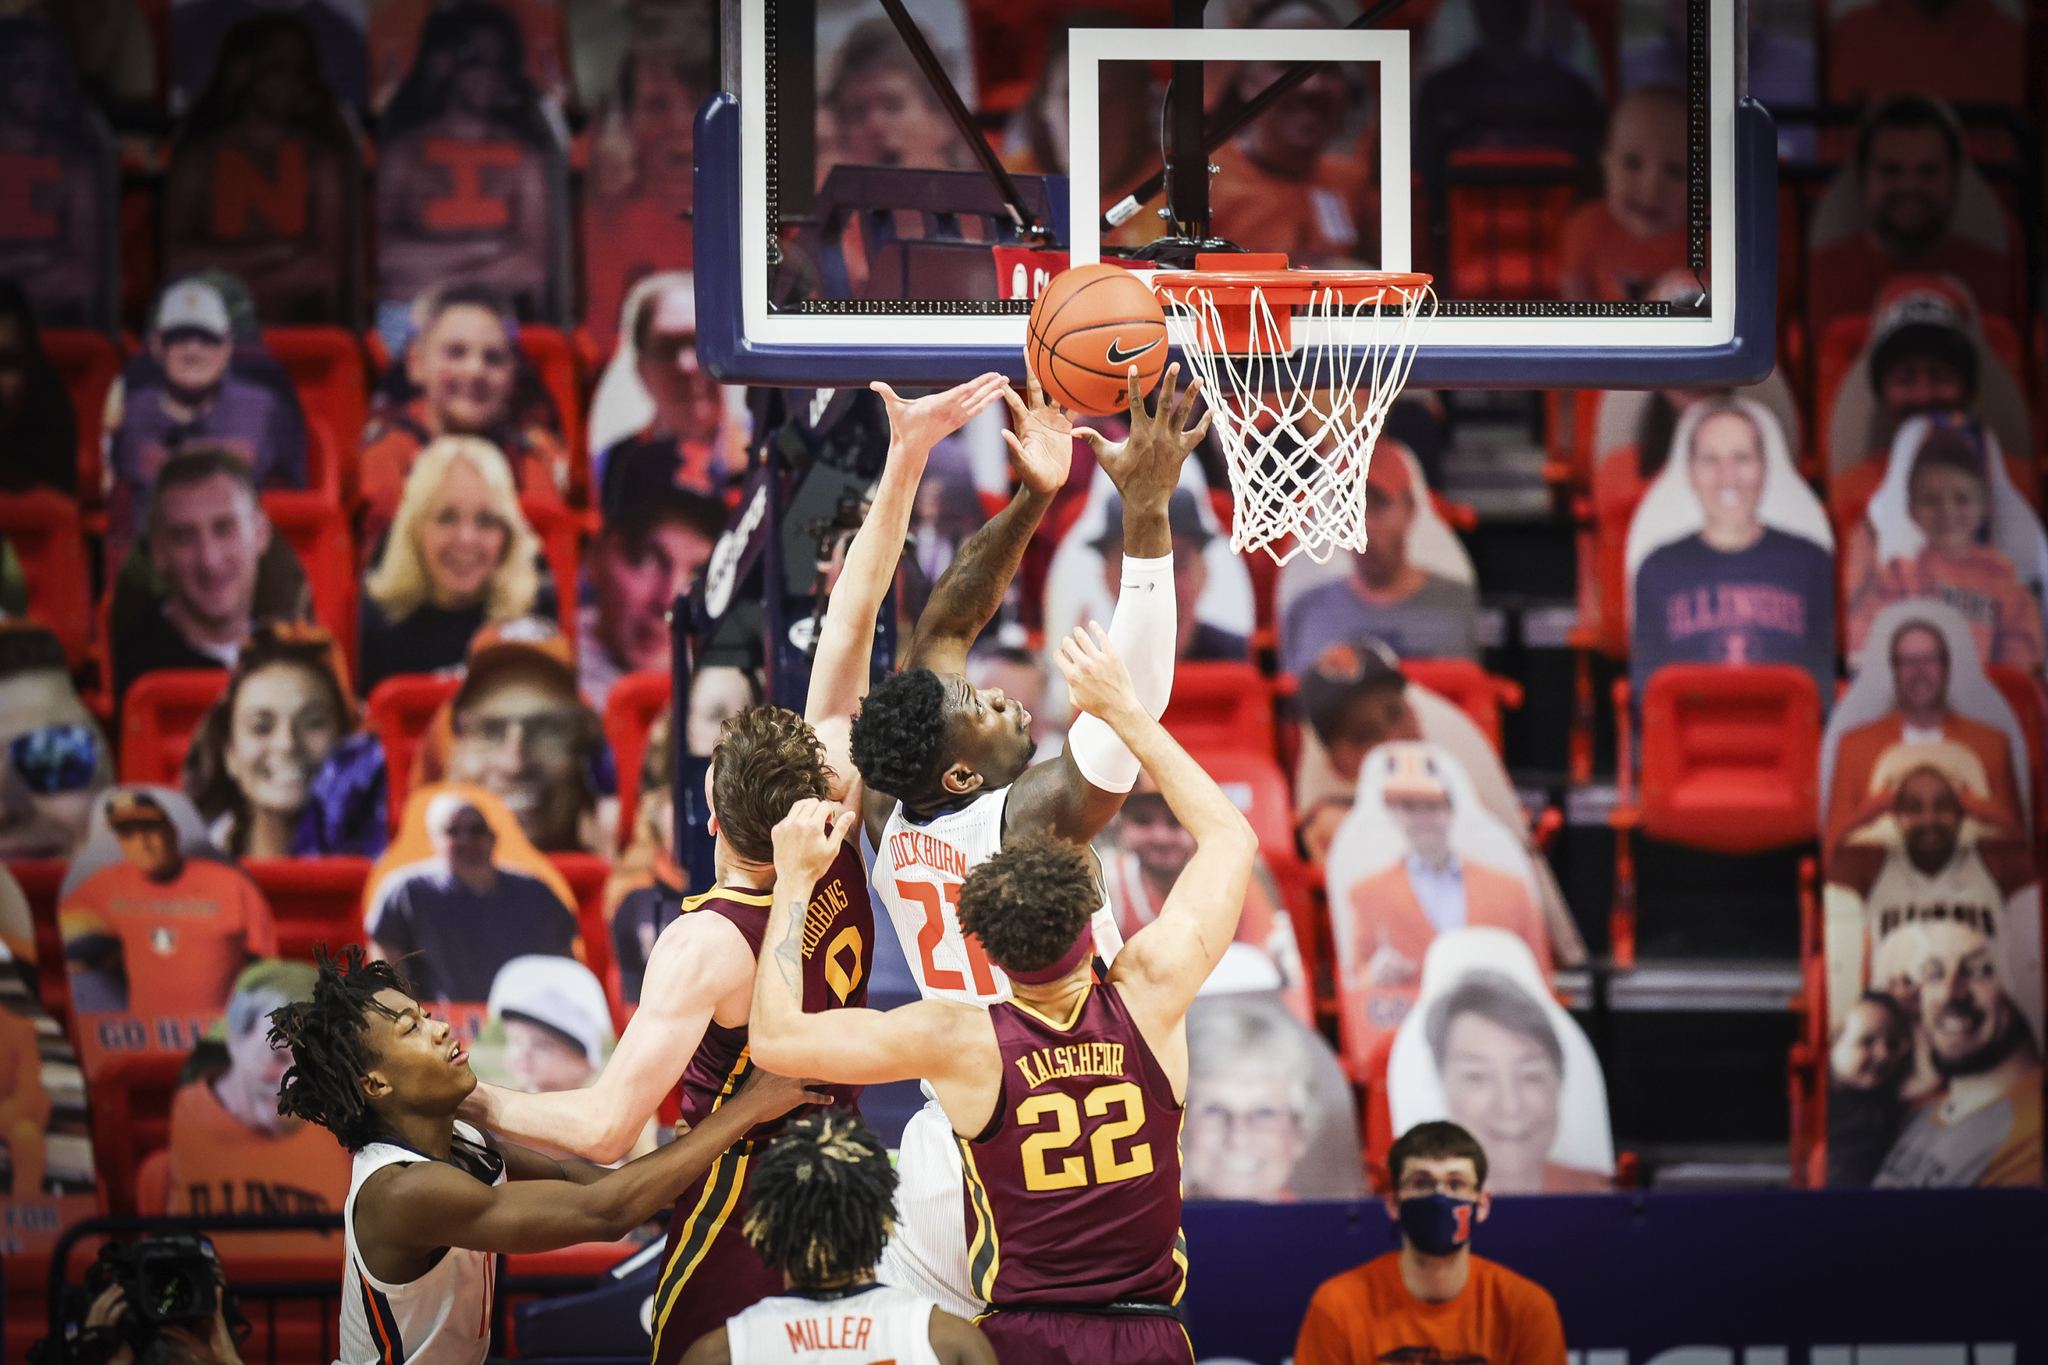 Illini-Golden Gophers Preview